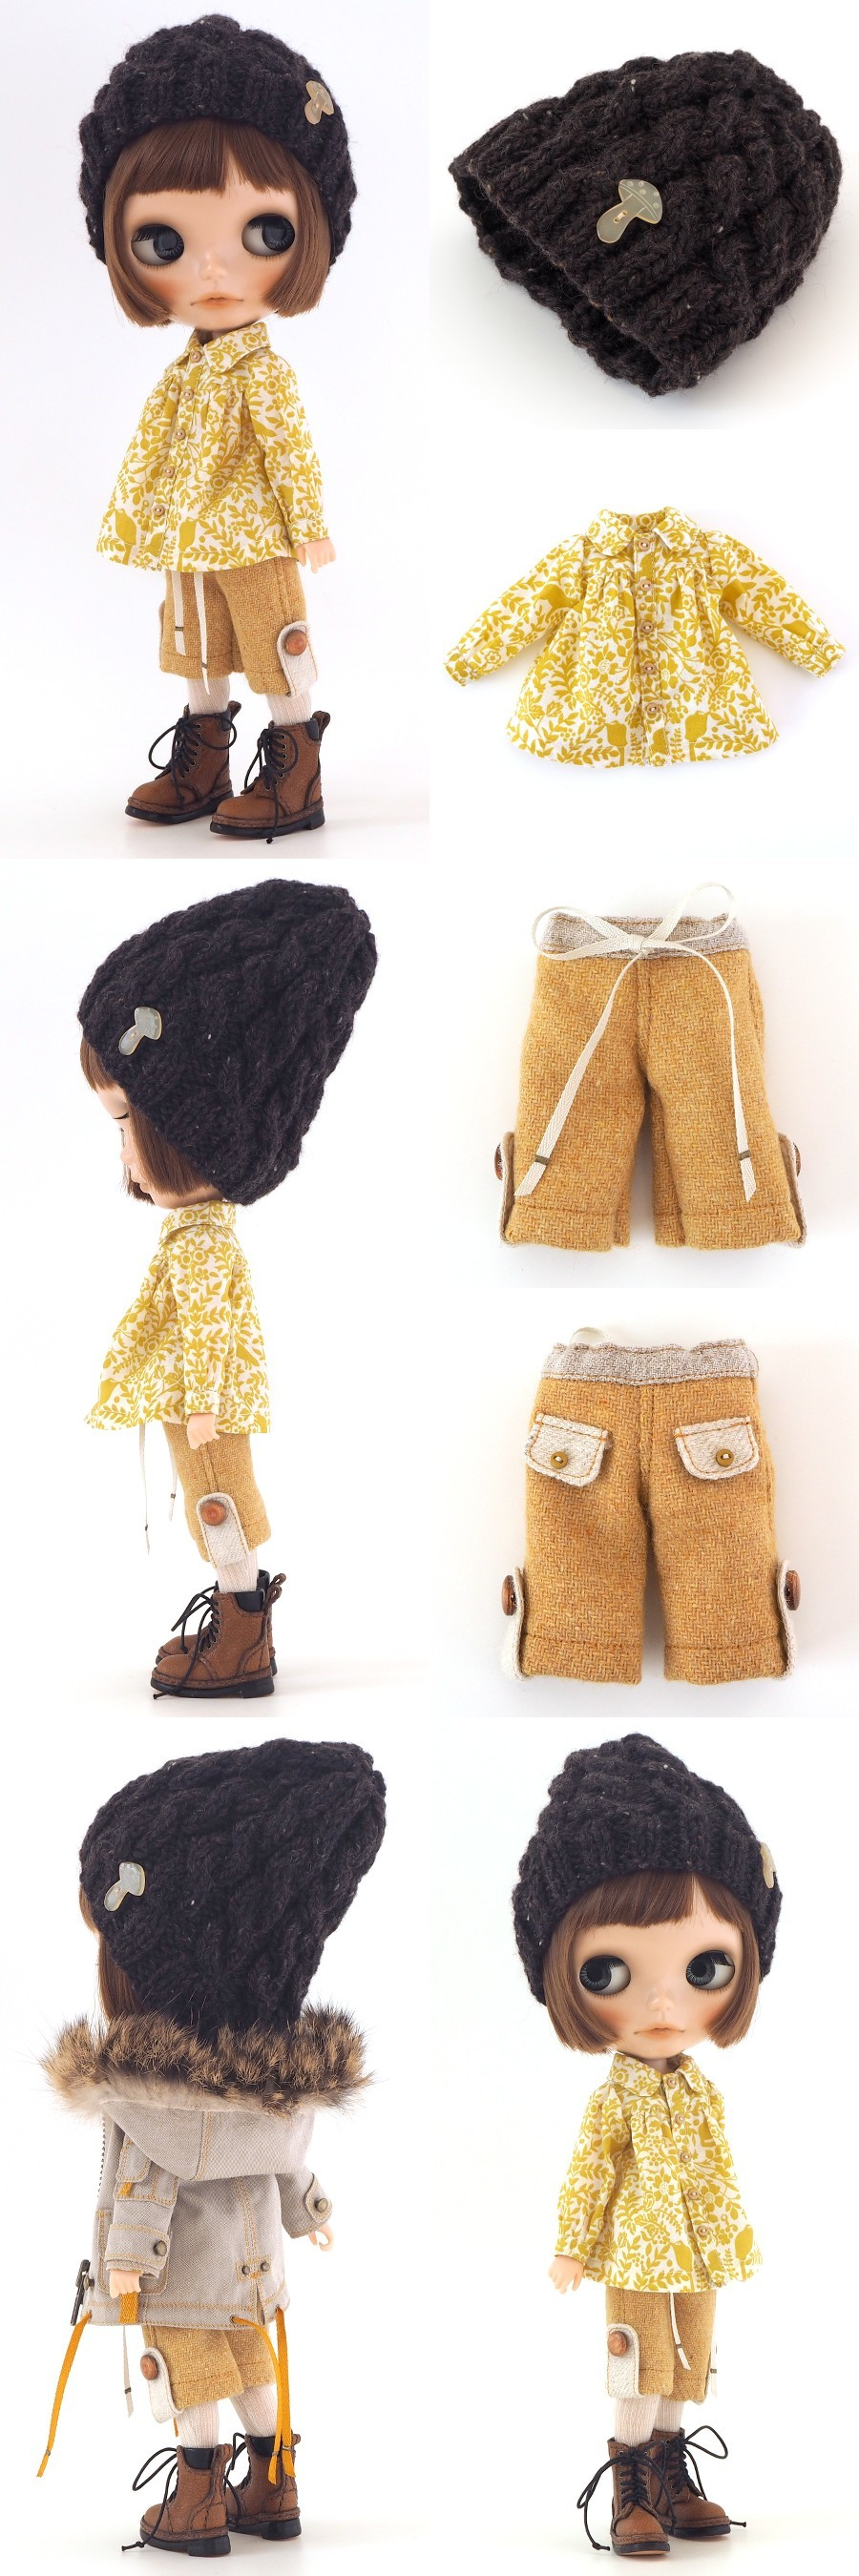 ** Blythe outfit ** Lucalily 558**_d0217189_11513113.jpg